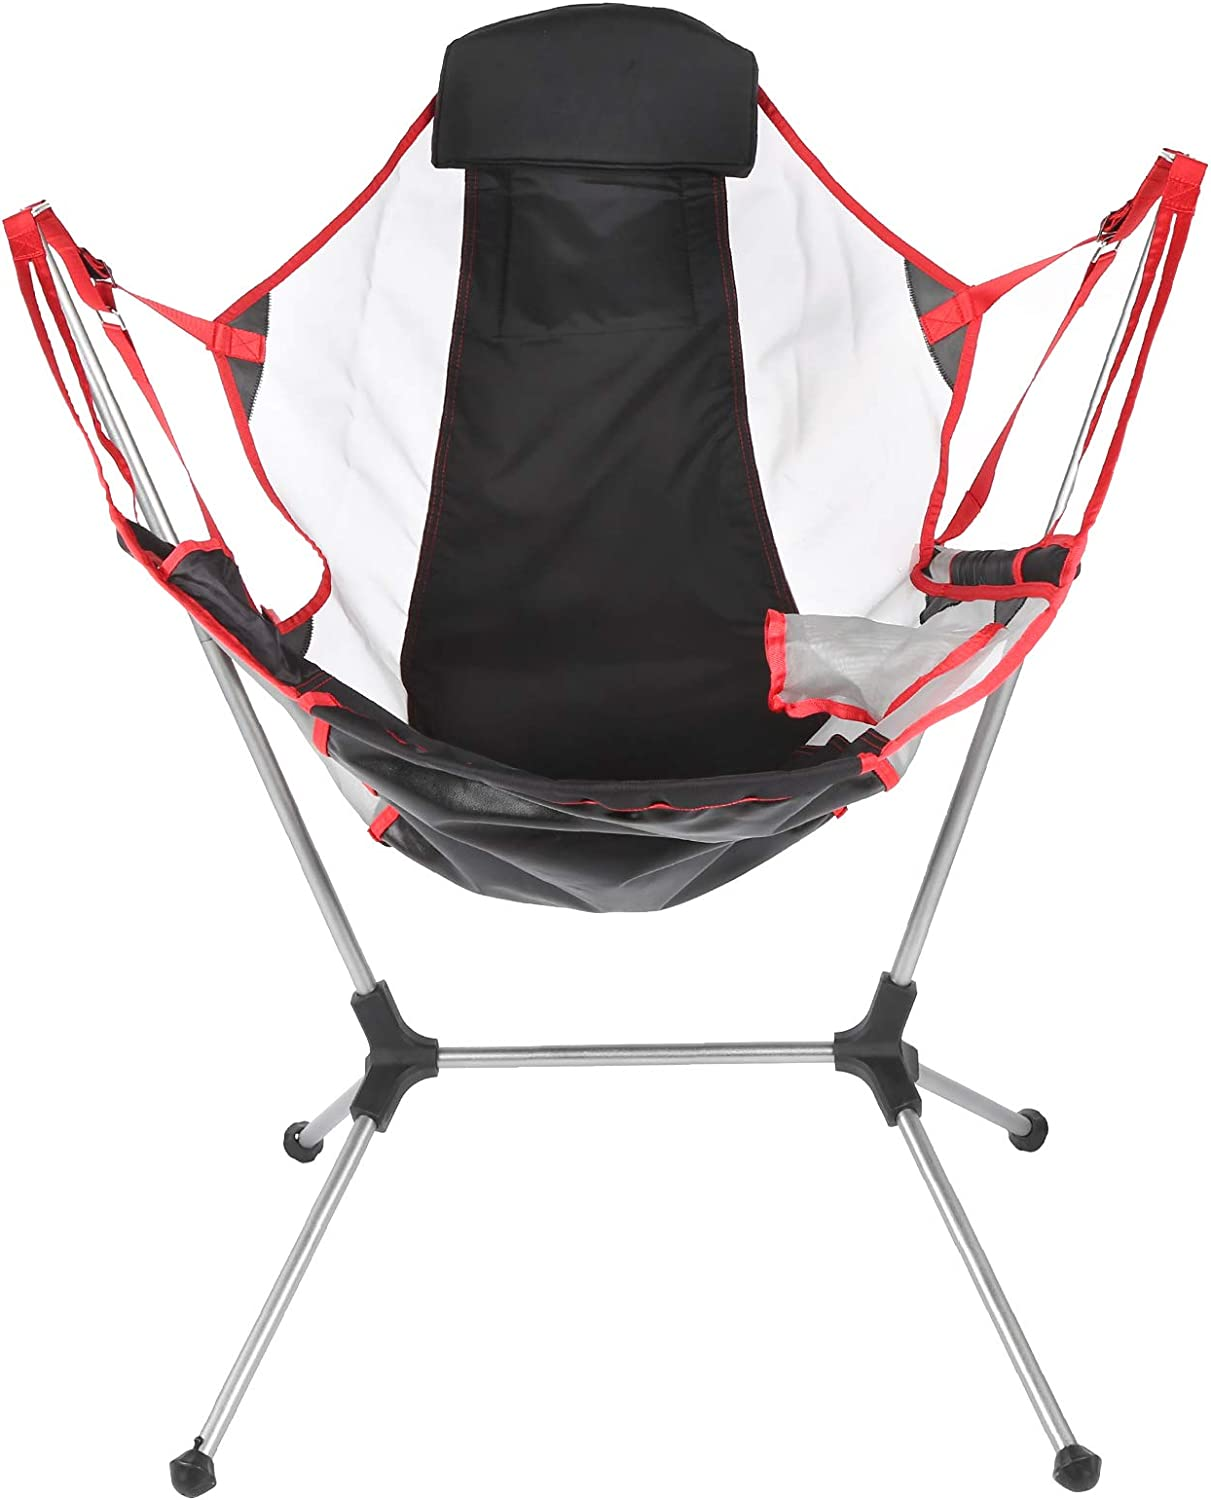 Chen-love1 Outdoor Barbecues Chair,Portable wit Our shop OFFers the best service High quality Rocking Chairs